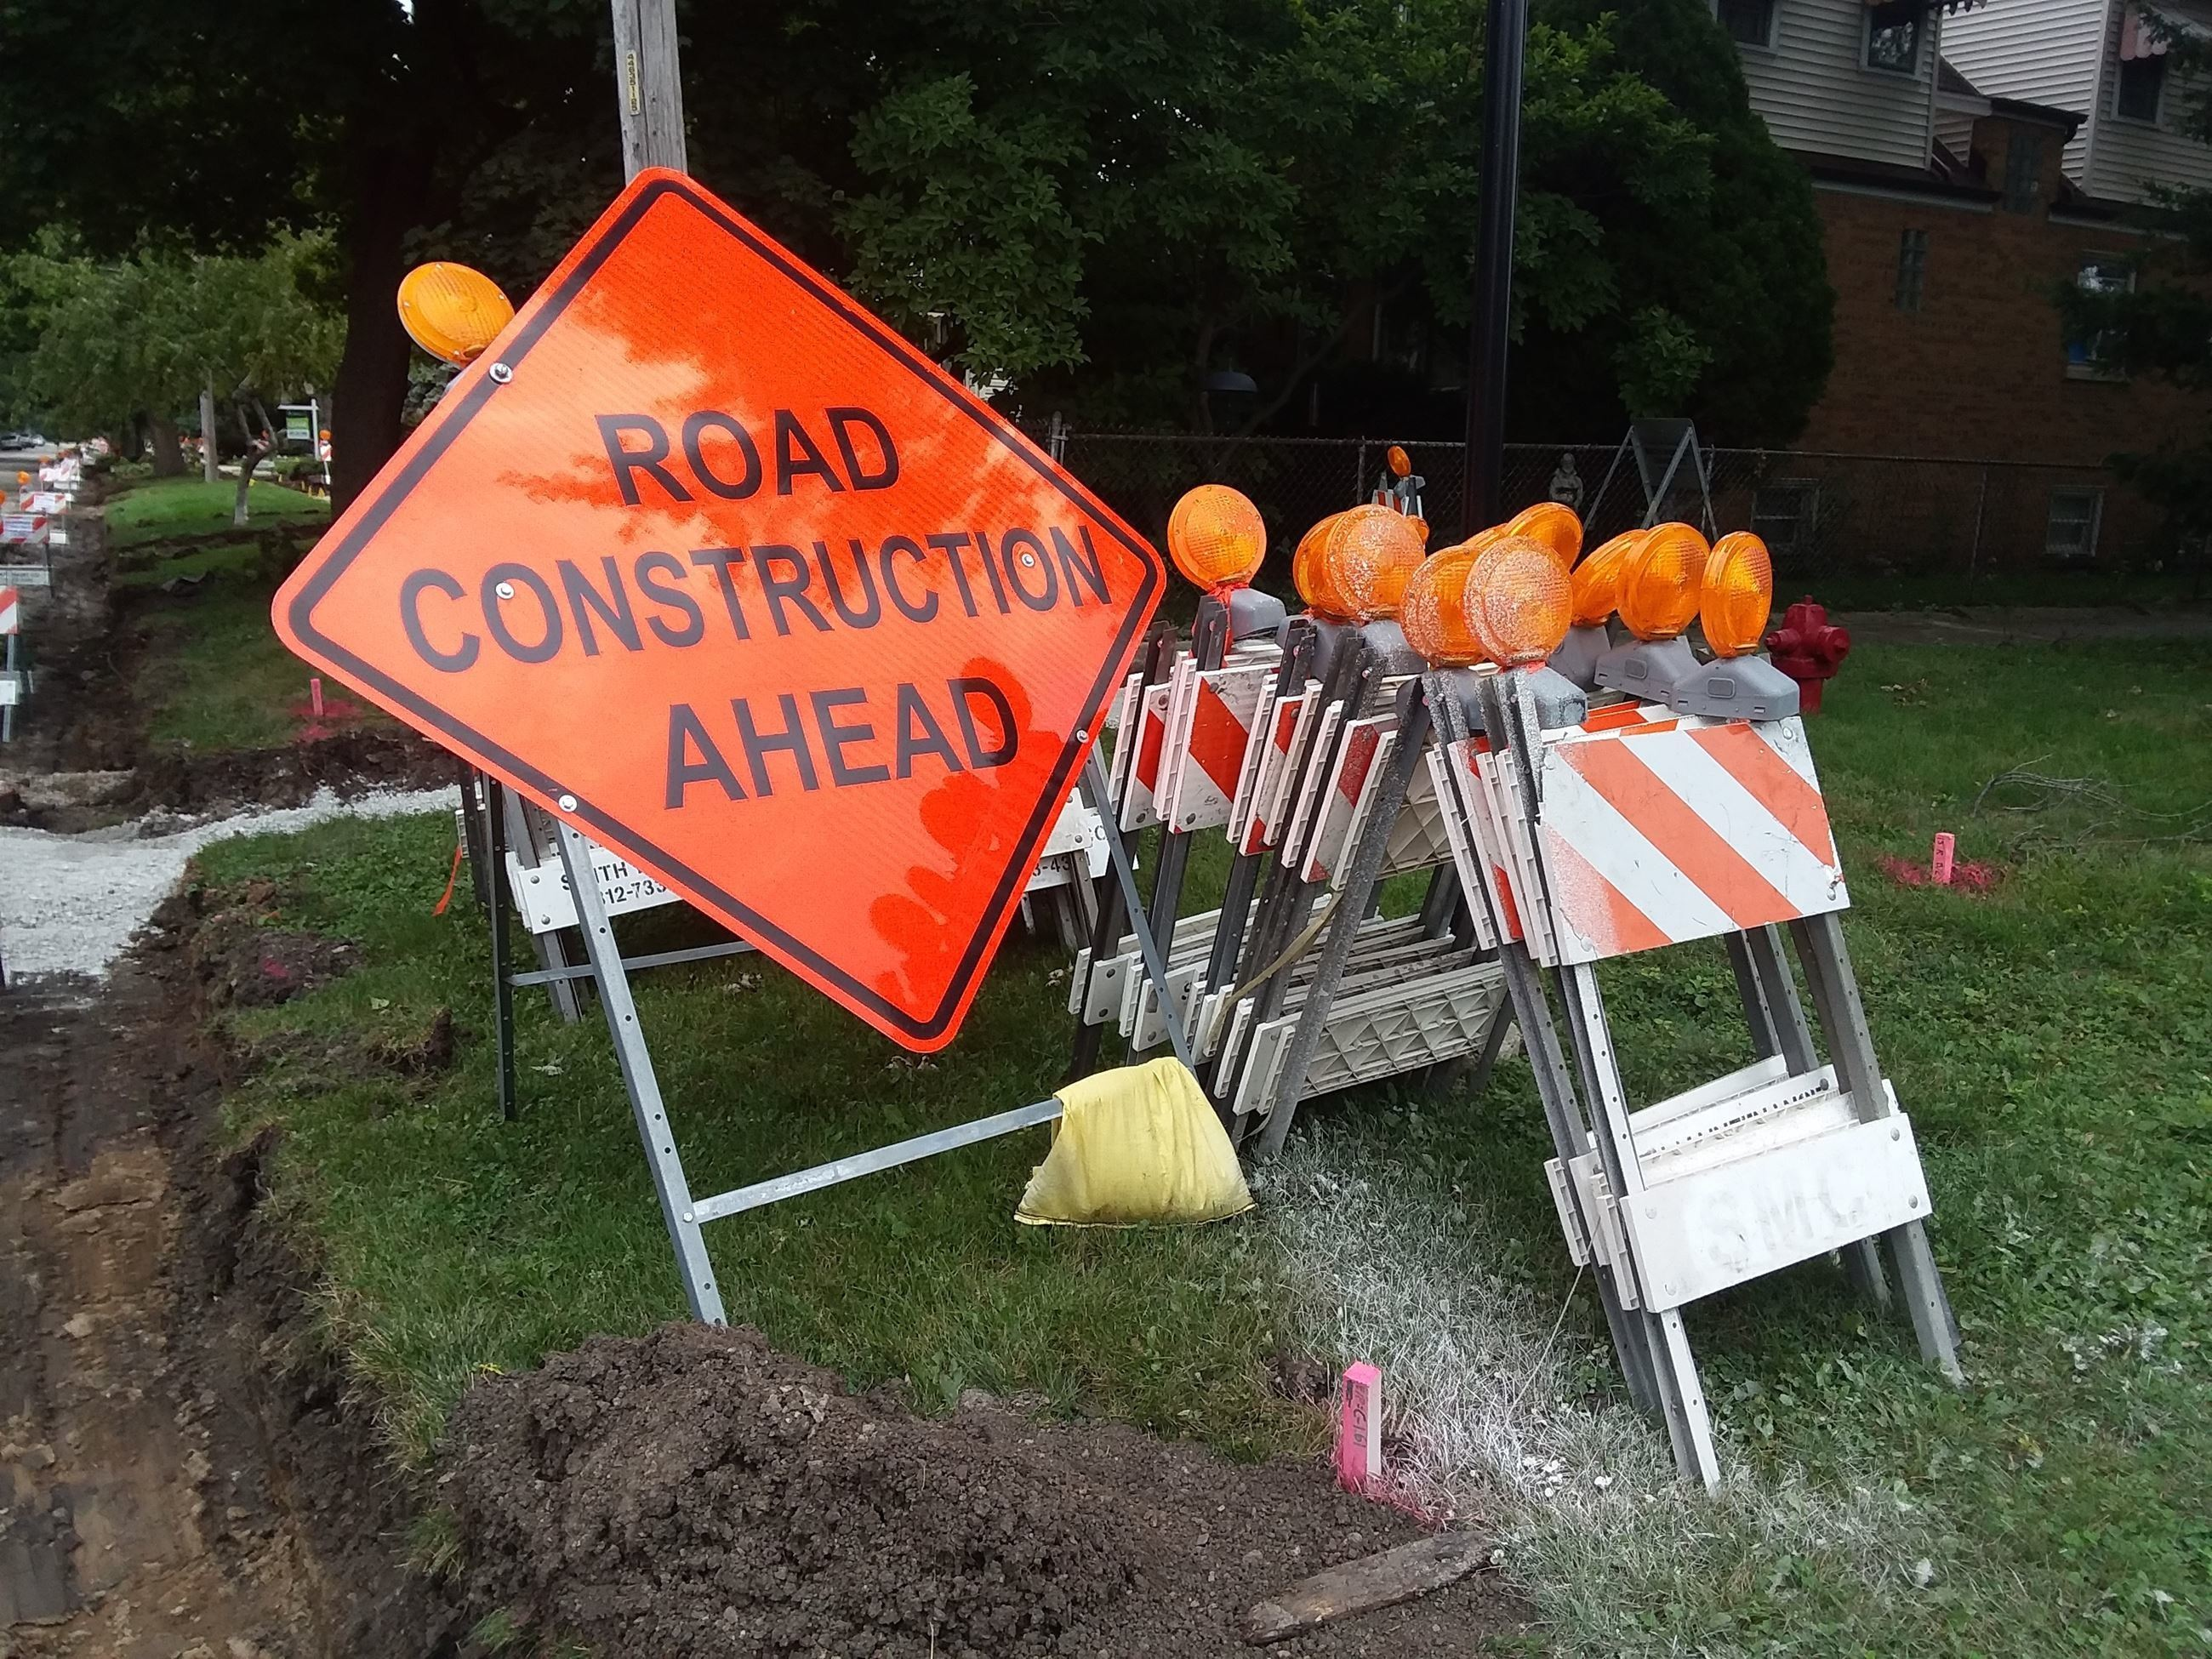 Orange Road Construction sign next to orange and white barricades